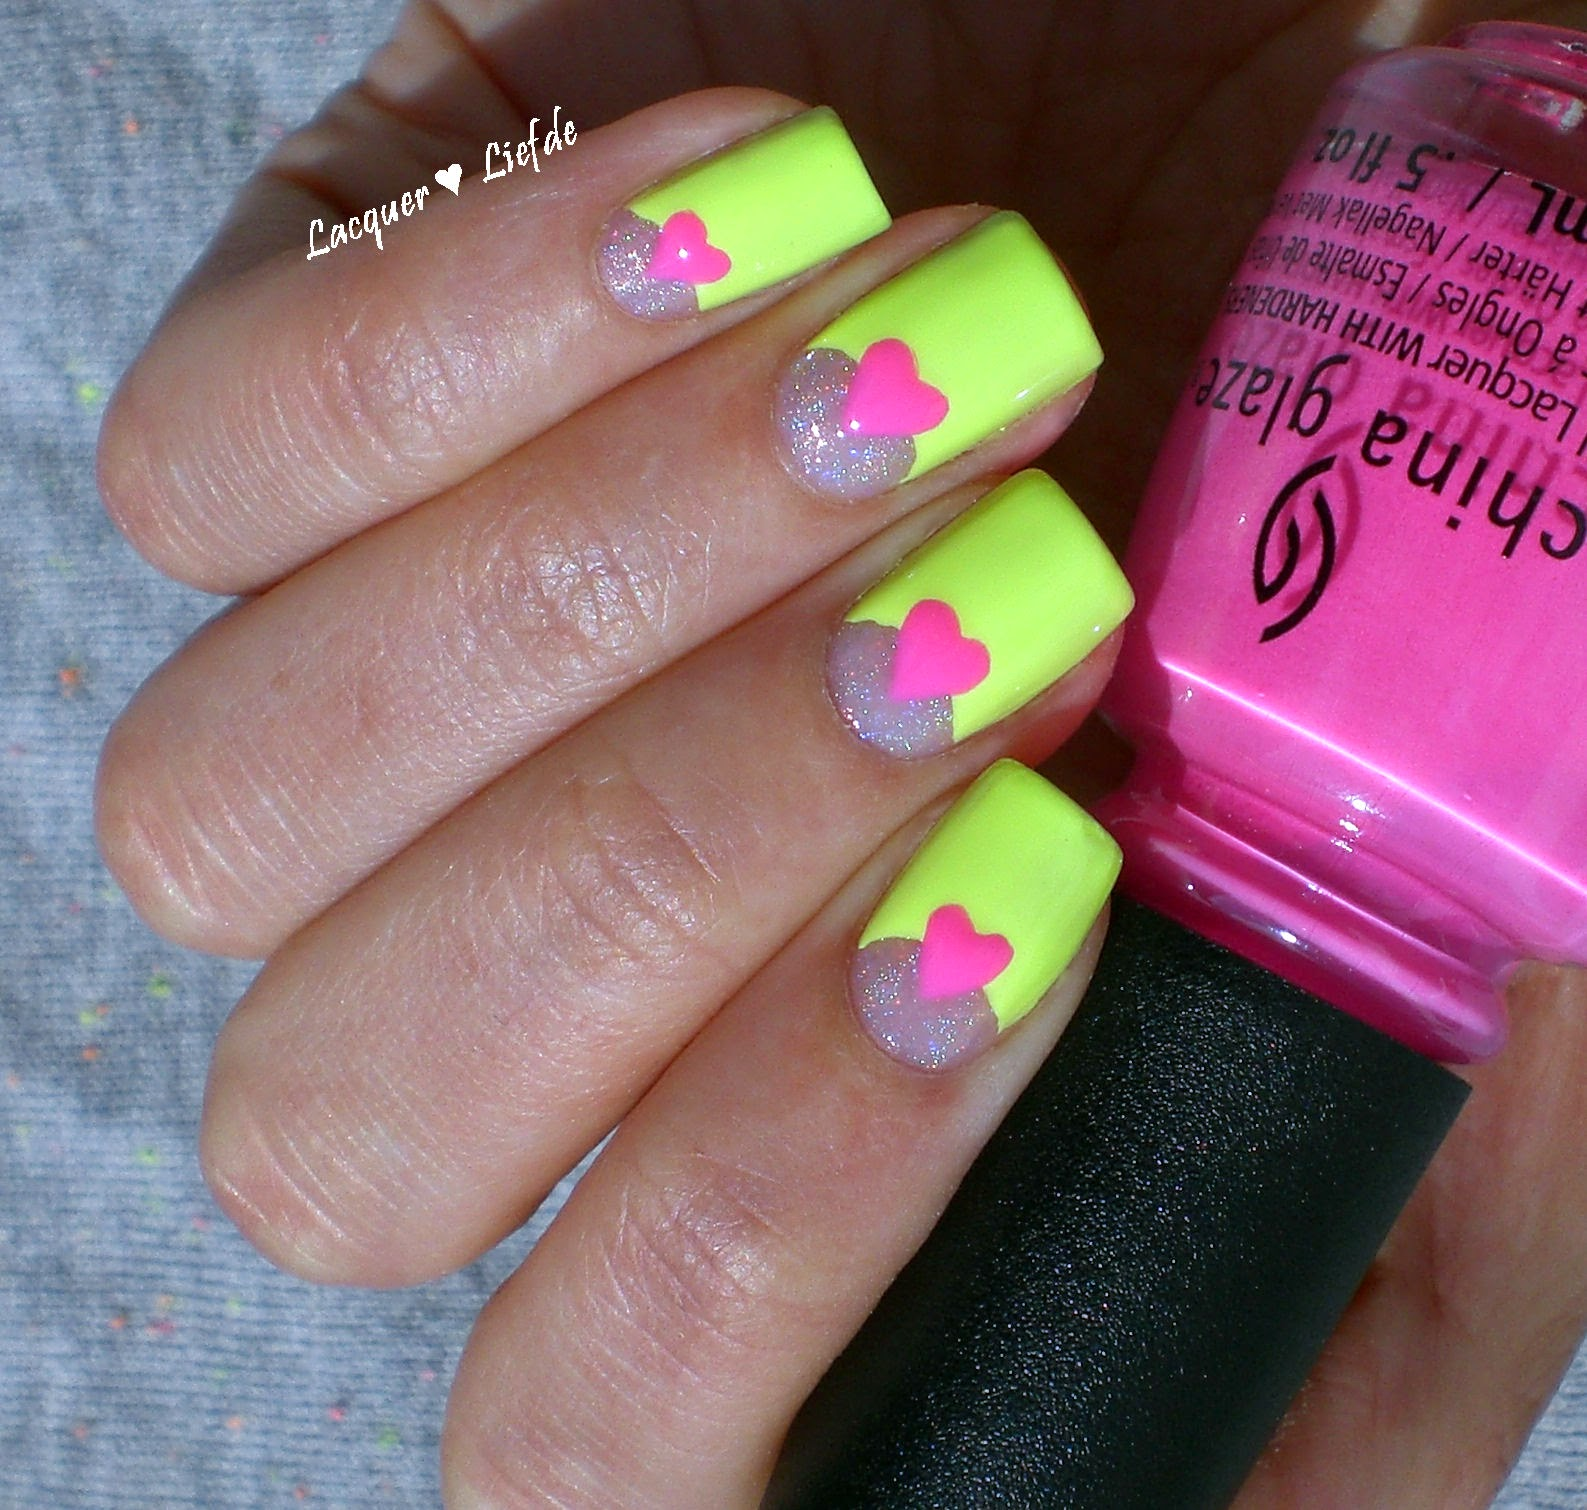 Neon half Moon Design Orly Key Lime Twist and China Glaze Glow with the FLow